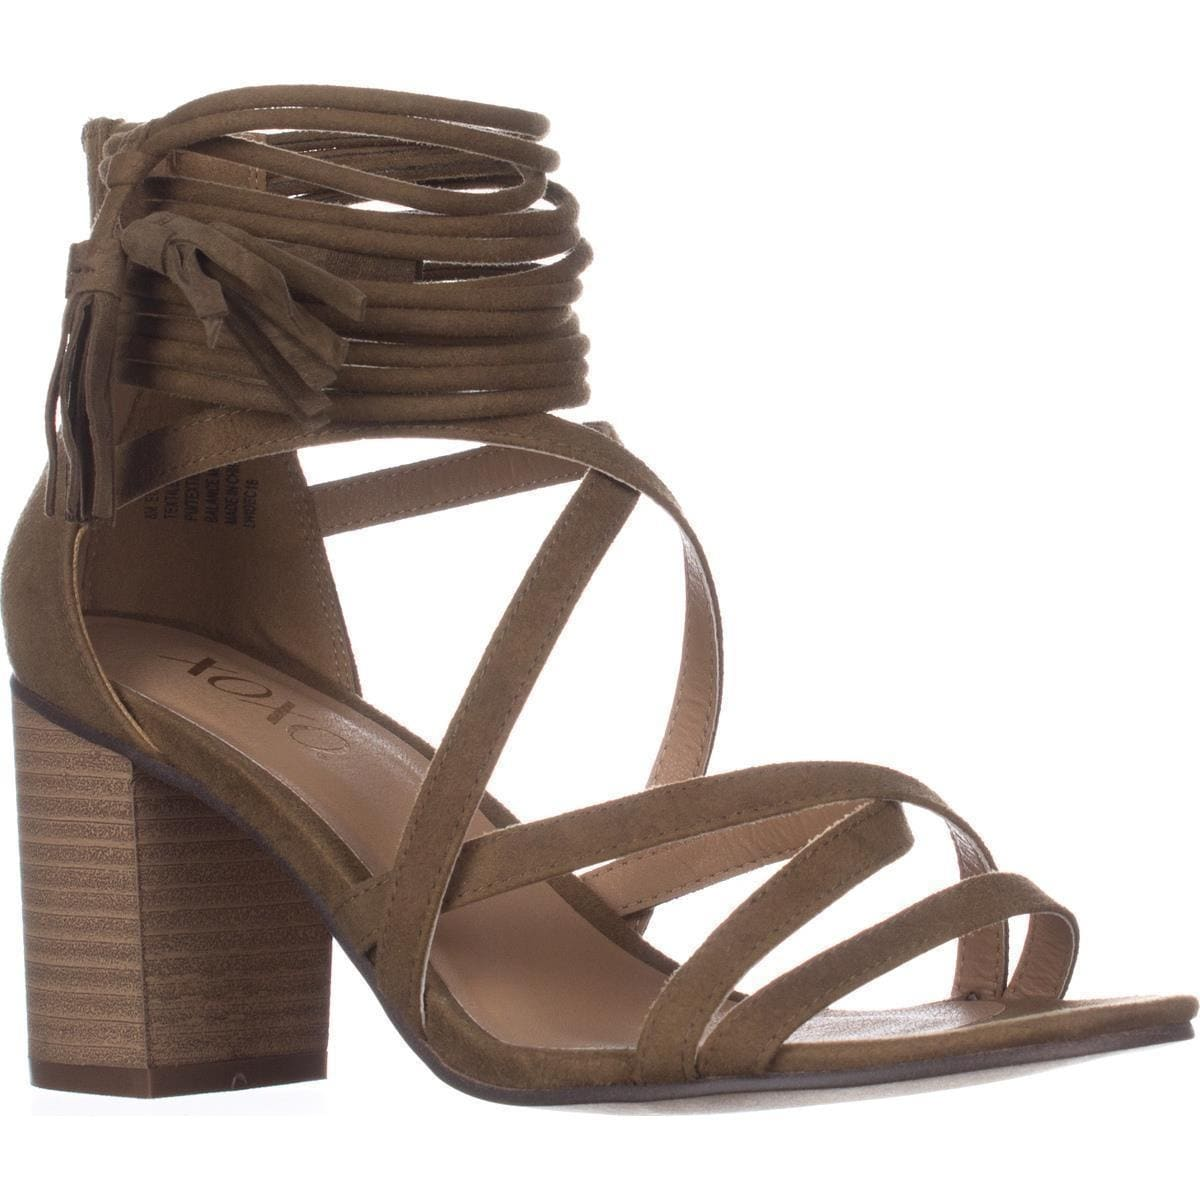 c81fb5dda Shop XOXO Elle Block-Heel Ankle-Strap Sandals